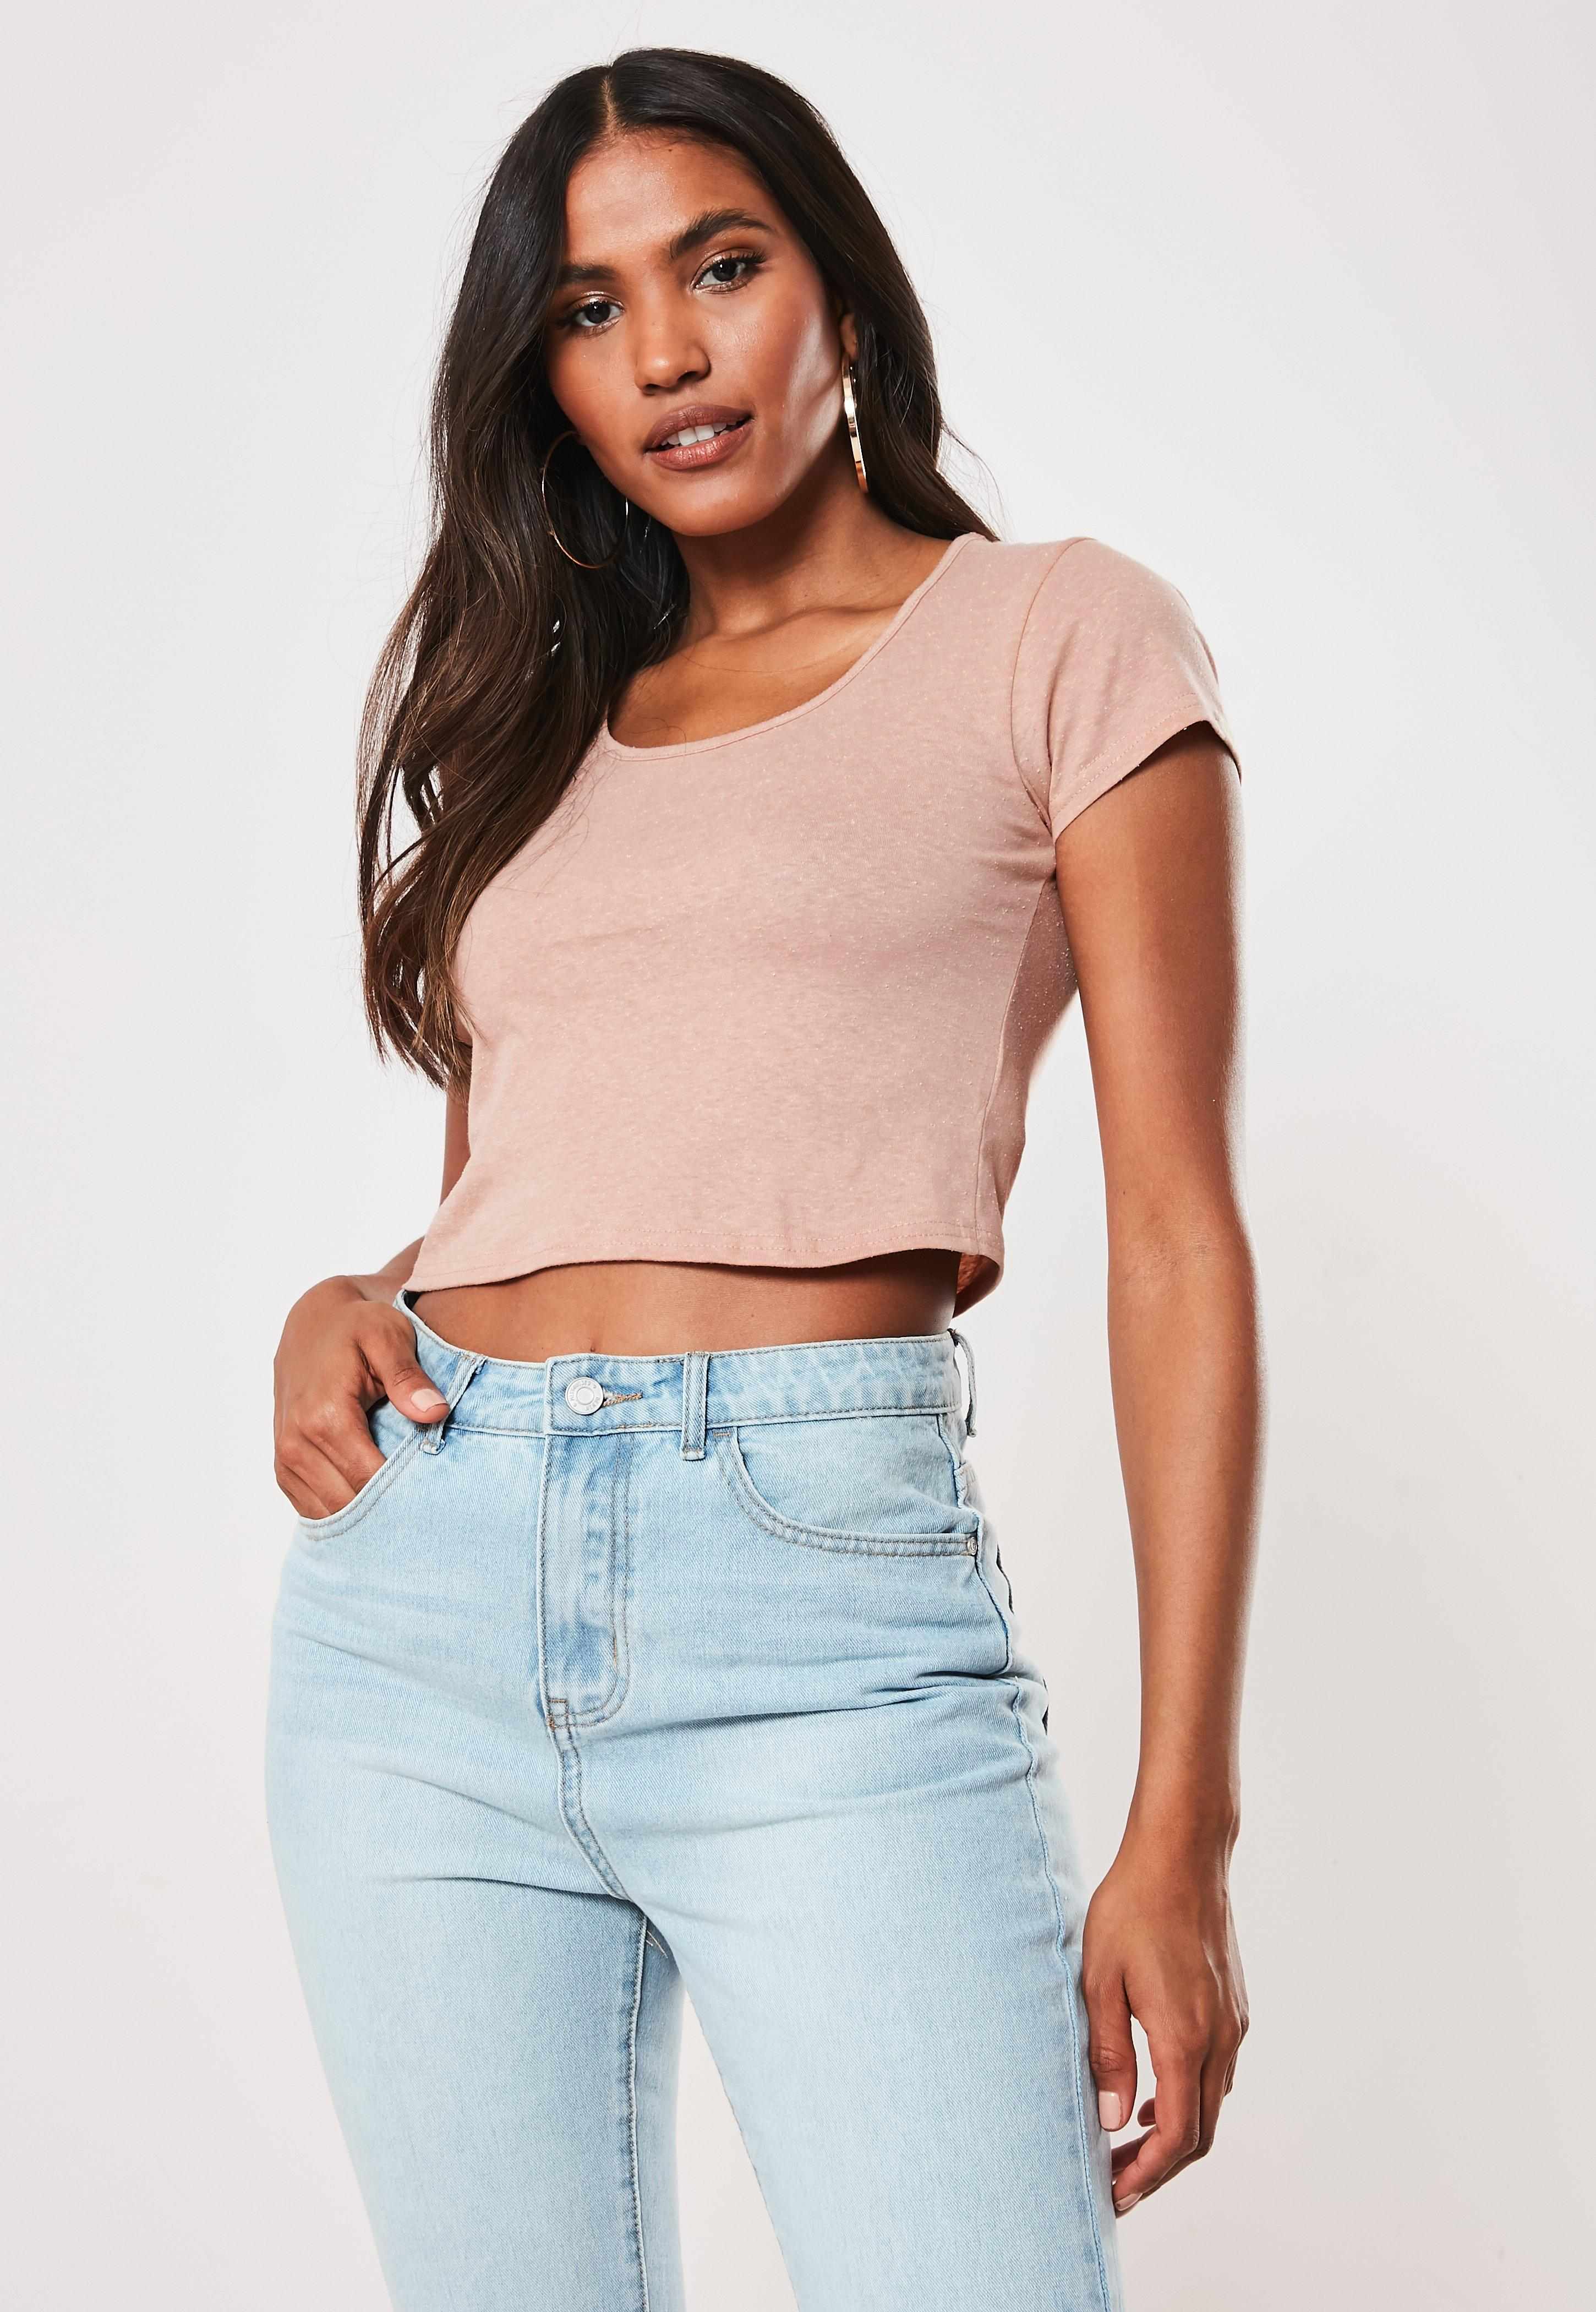 6dfdae41f3b Nude Tops | Beige & Camel Tops - Missguided